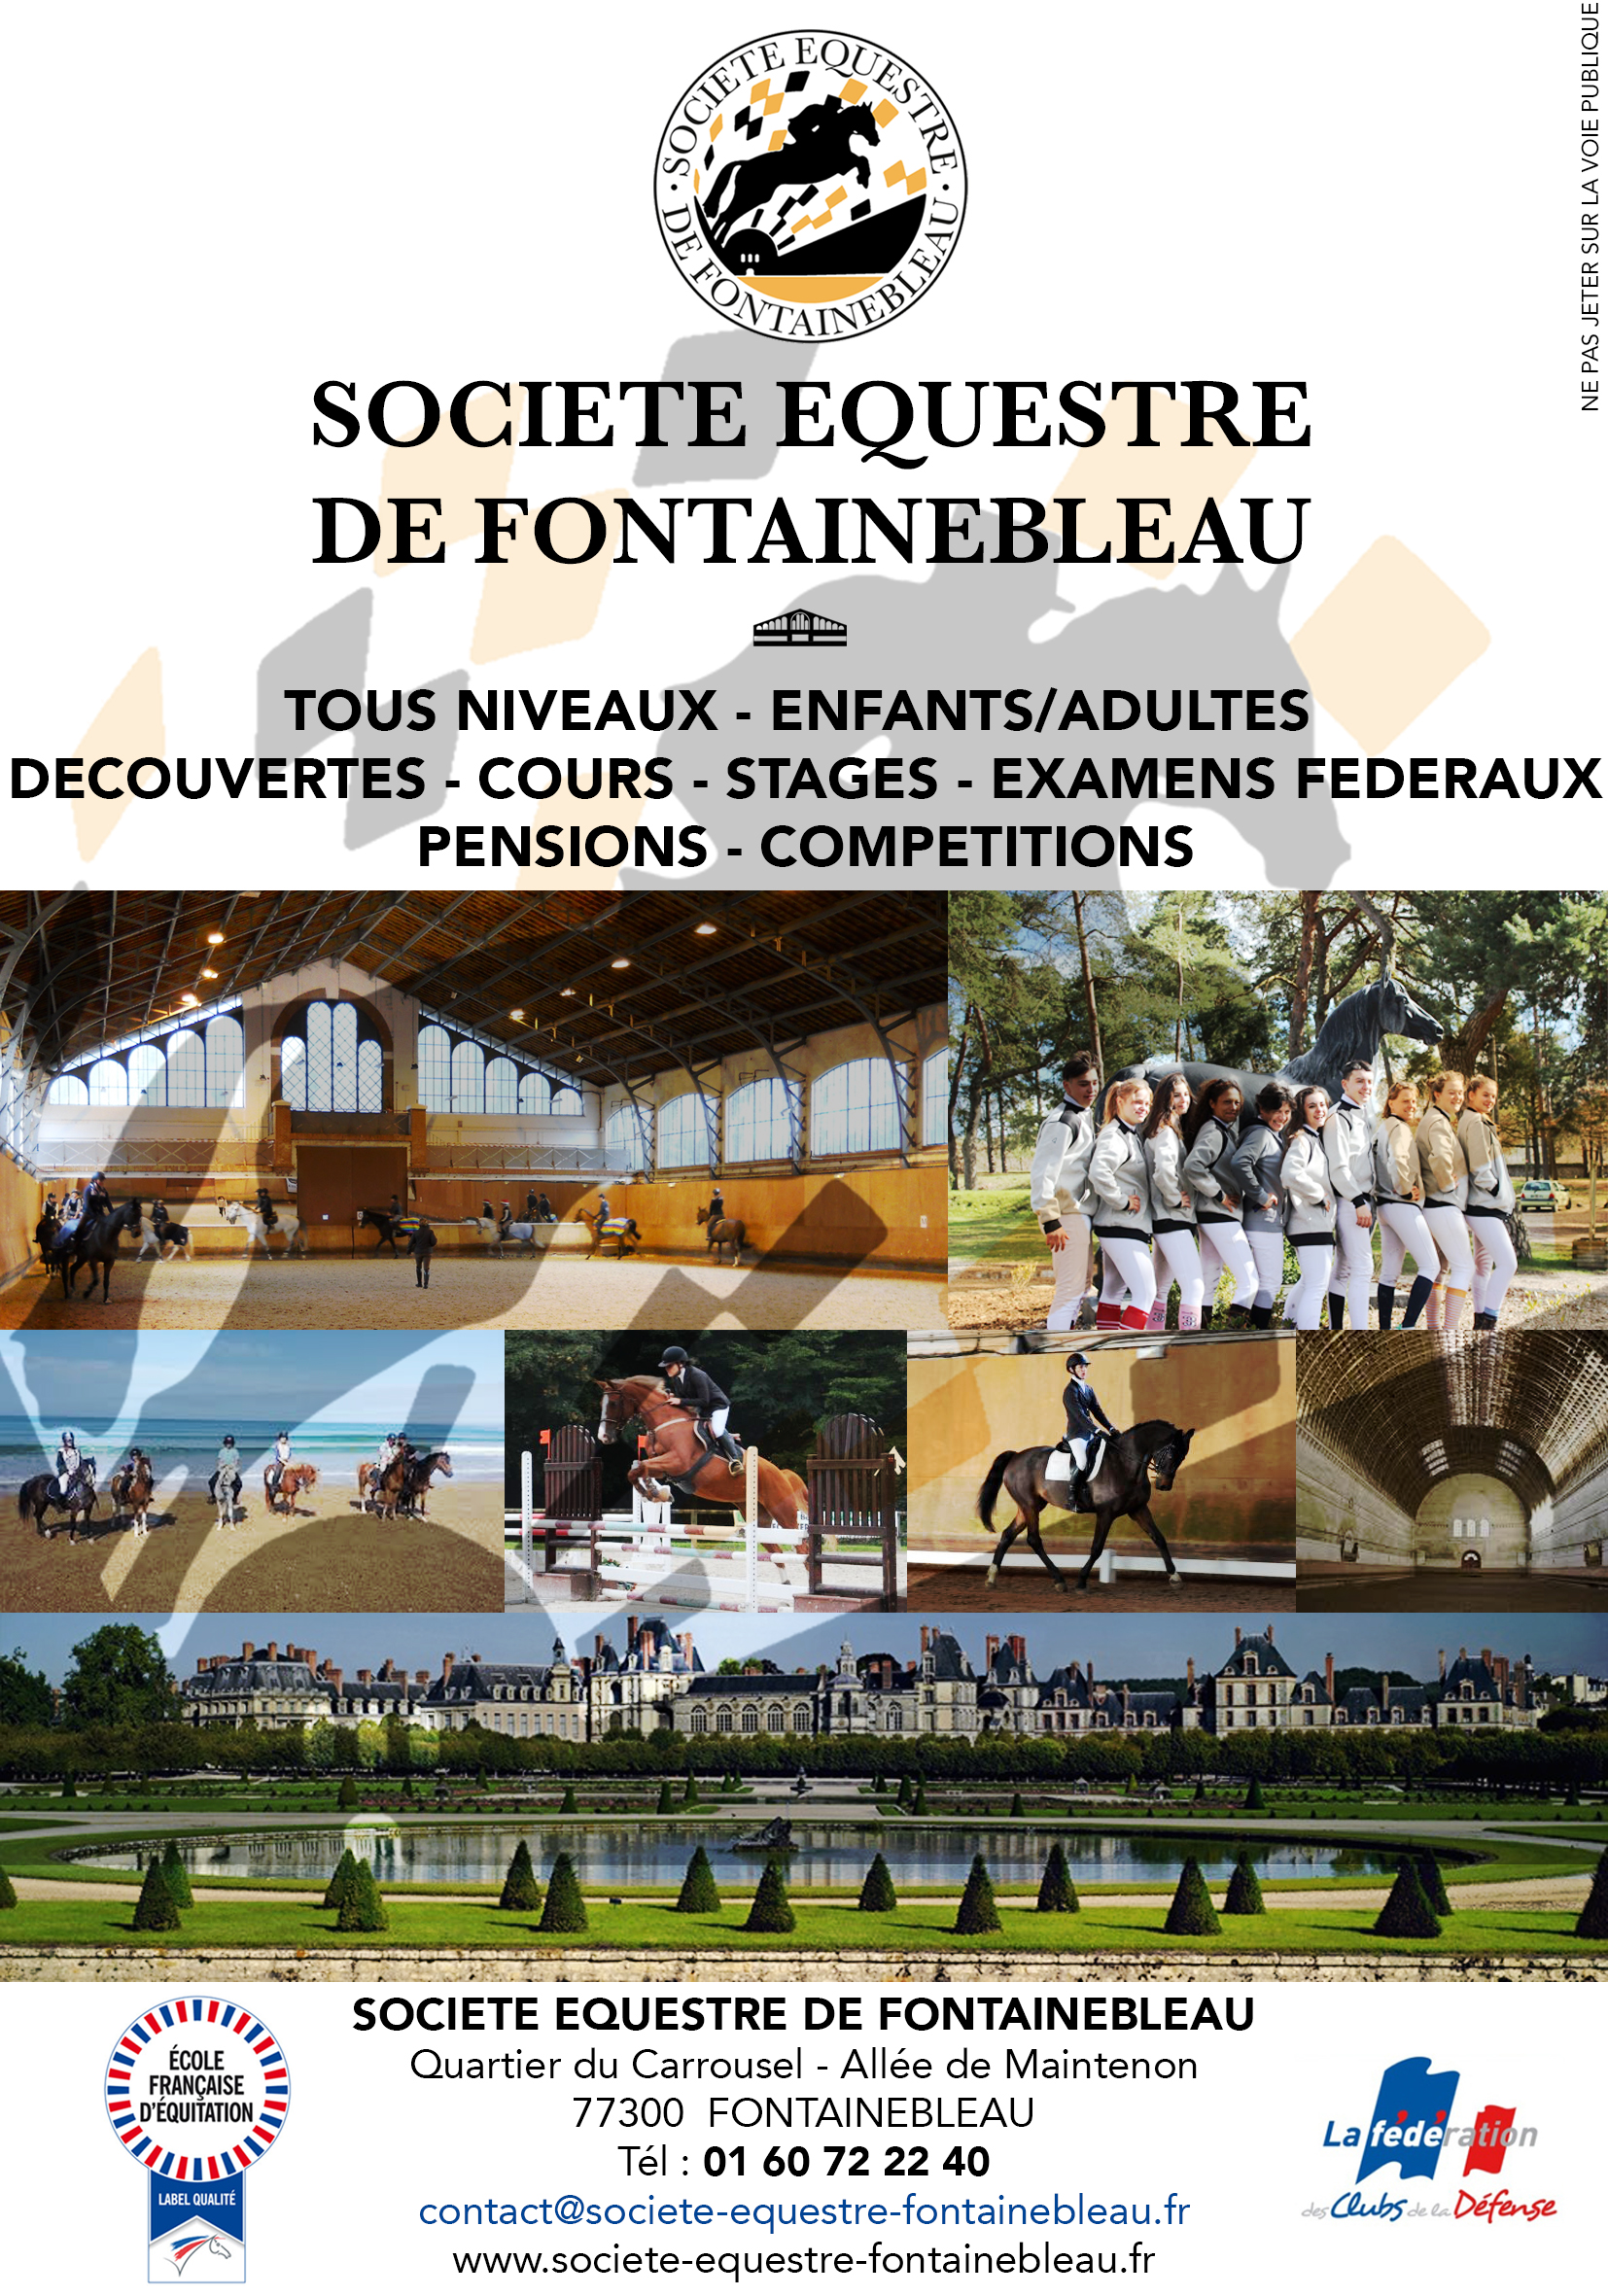 INSCRIPTIONS ANNEE ACOLAIRE 2020-2021